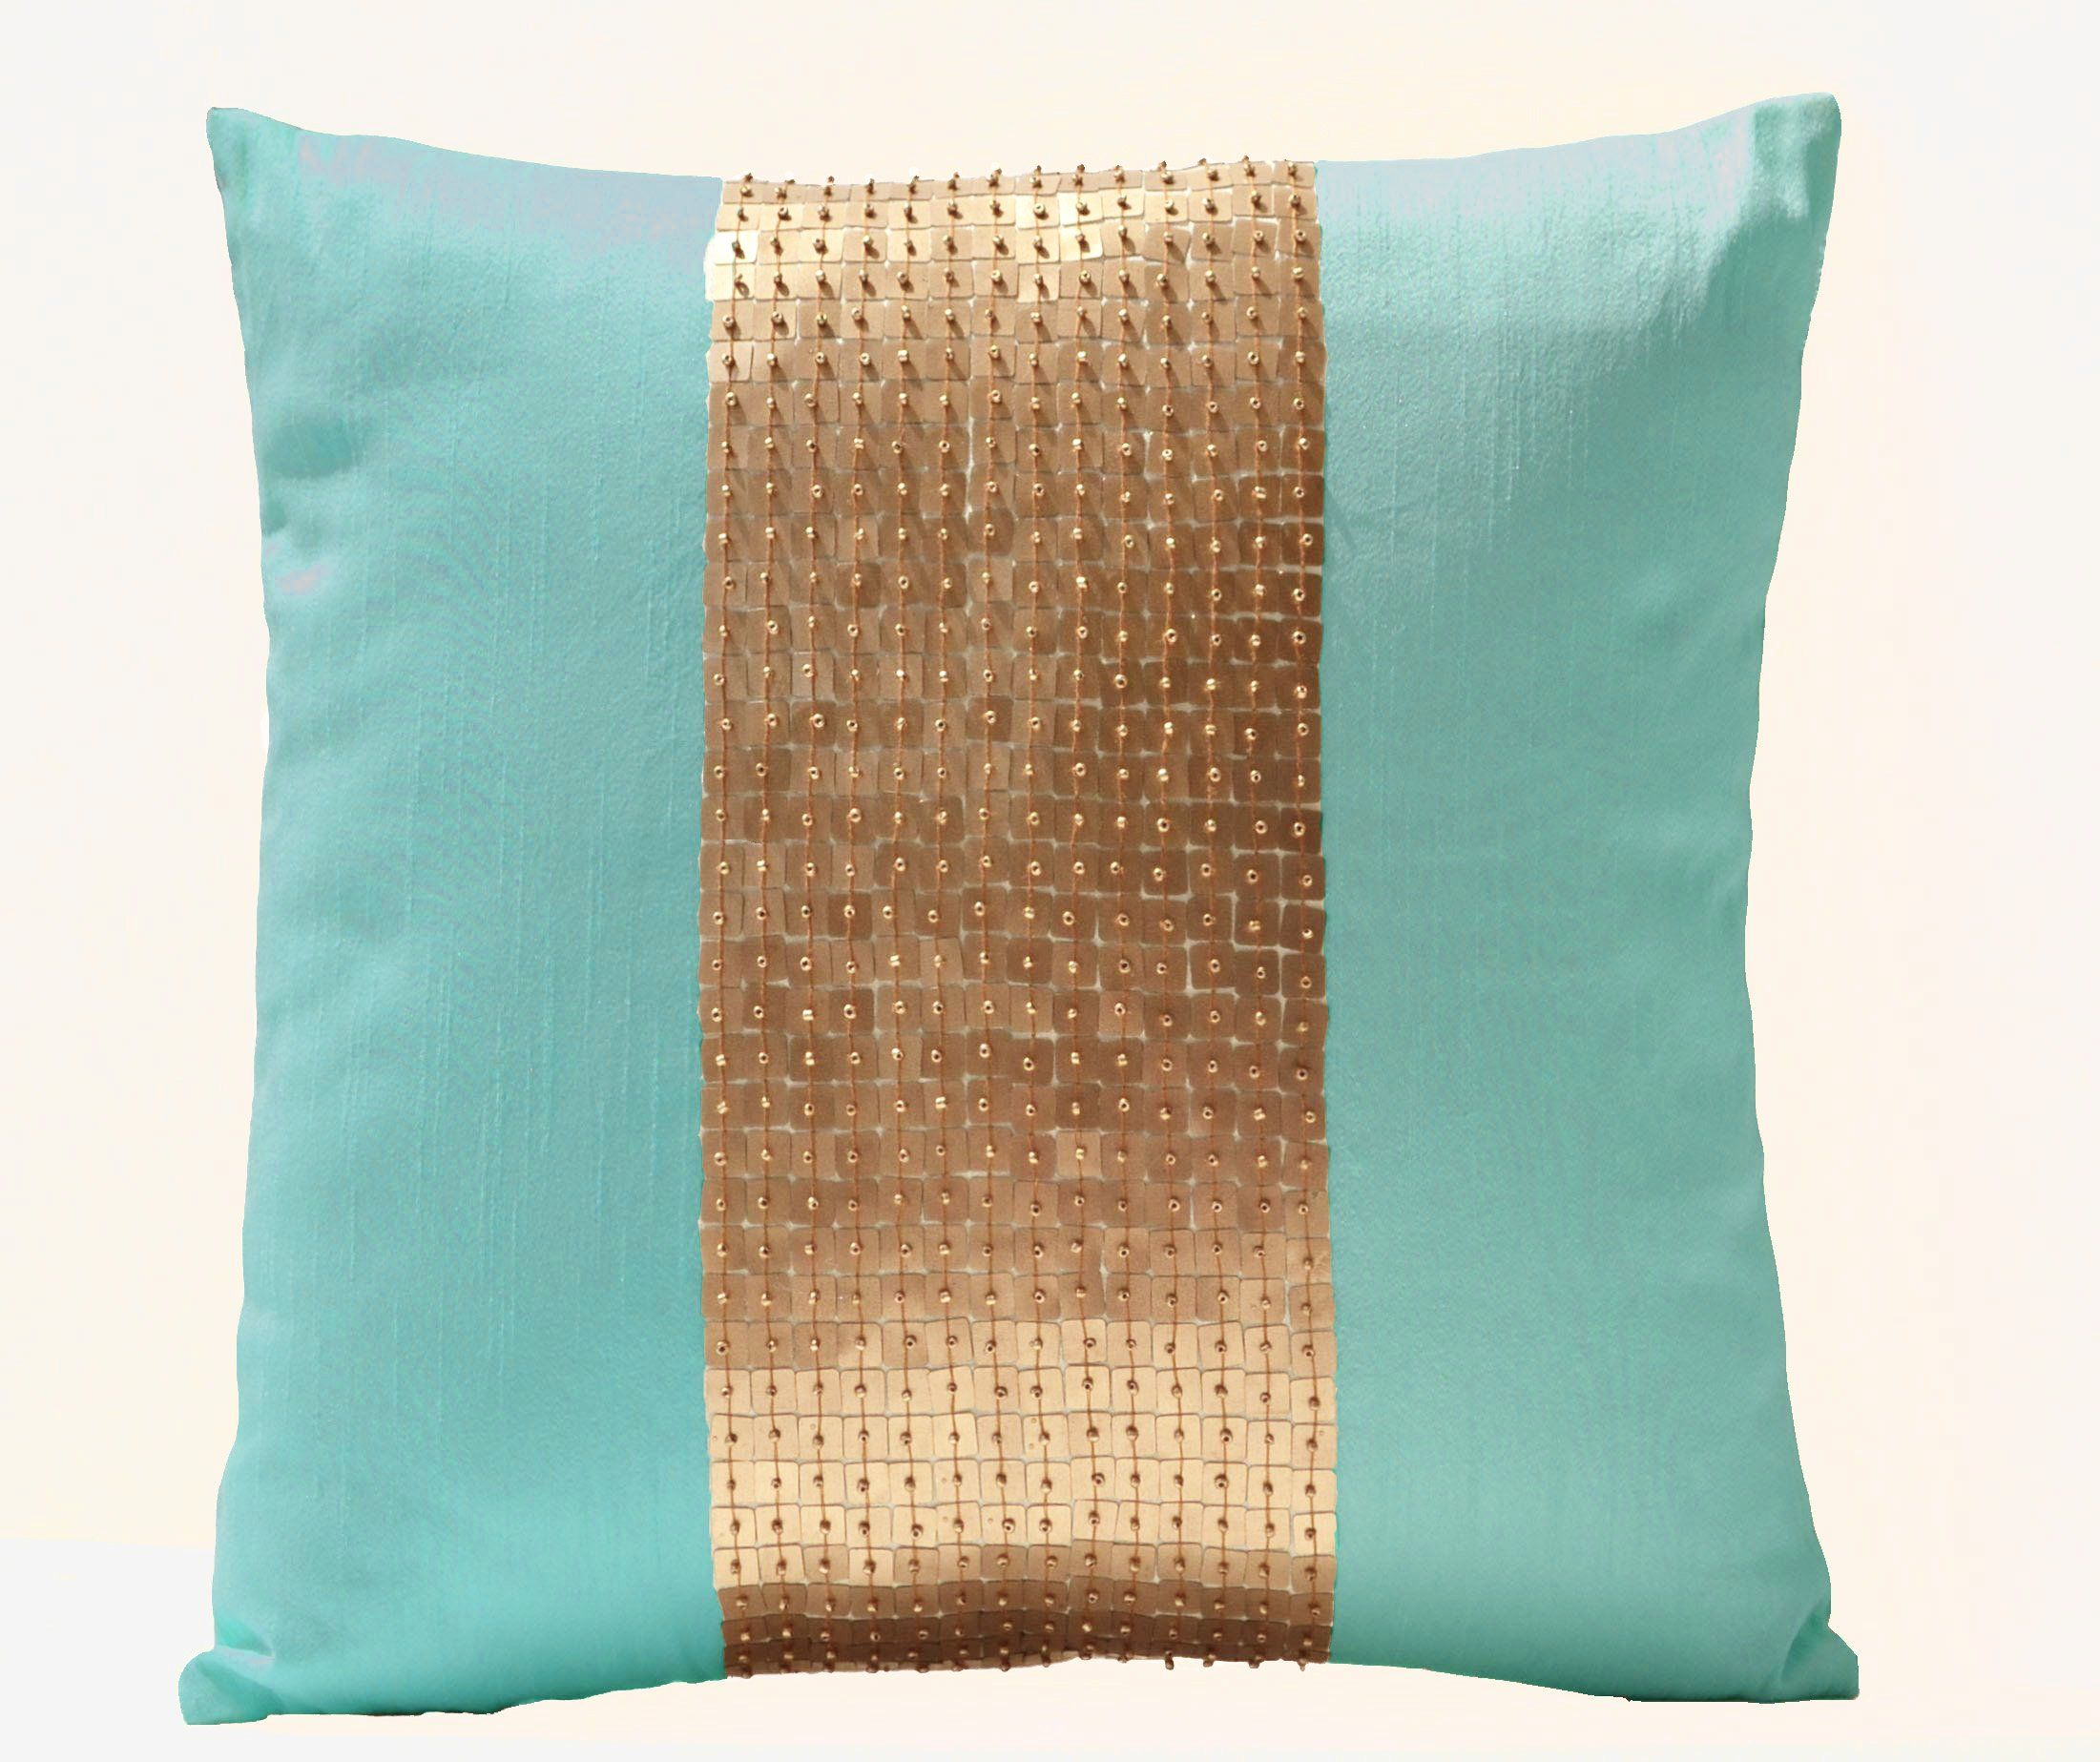 Teal Pillow Covers Teal Gold Color Block In Silk And